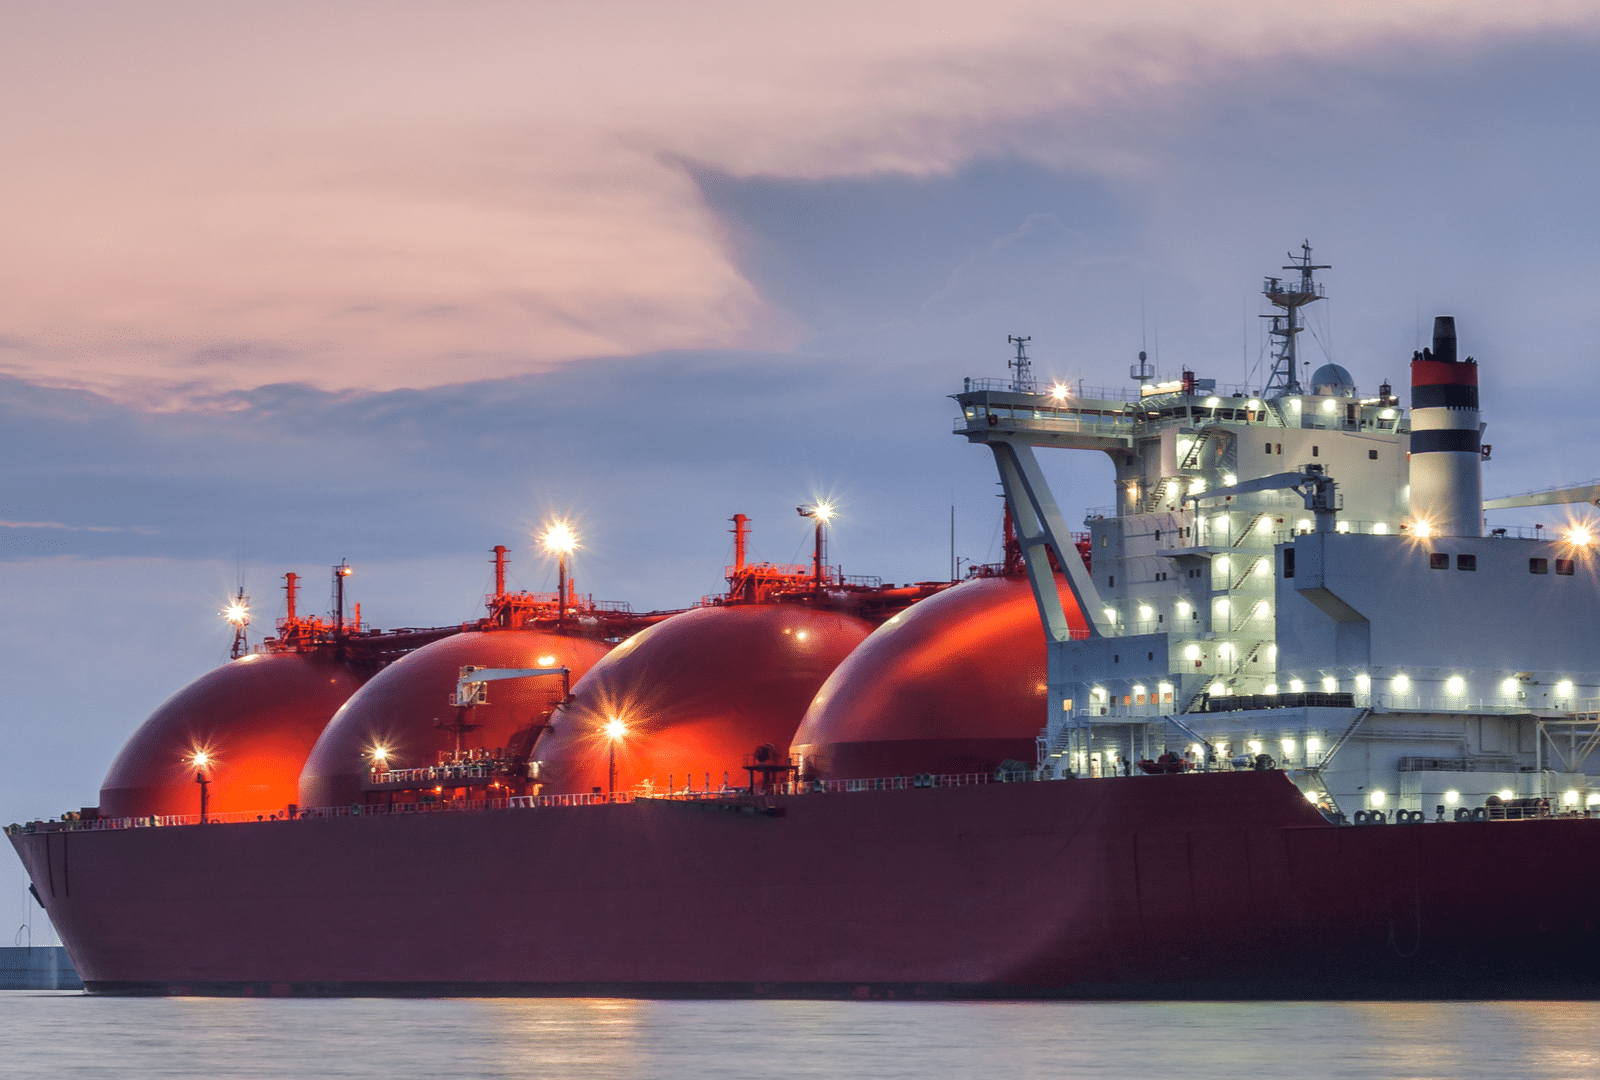 EXIM Bank finalizes first-ever LNG export transaction